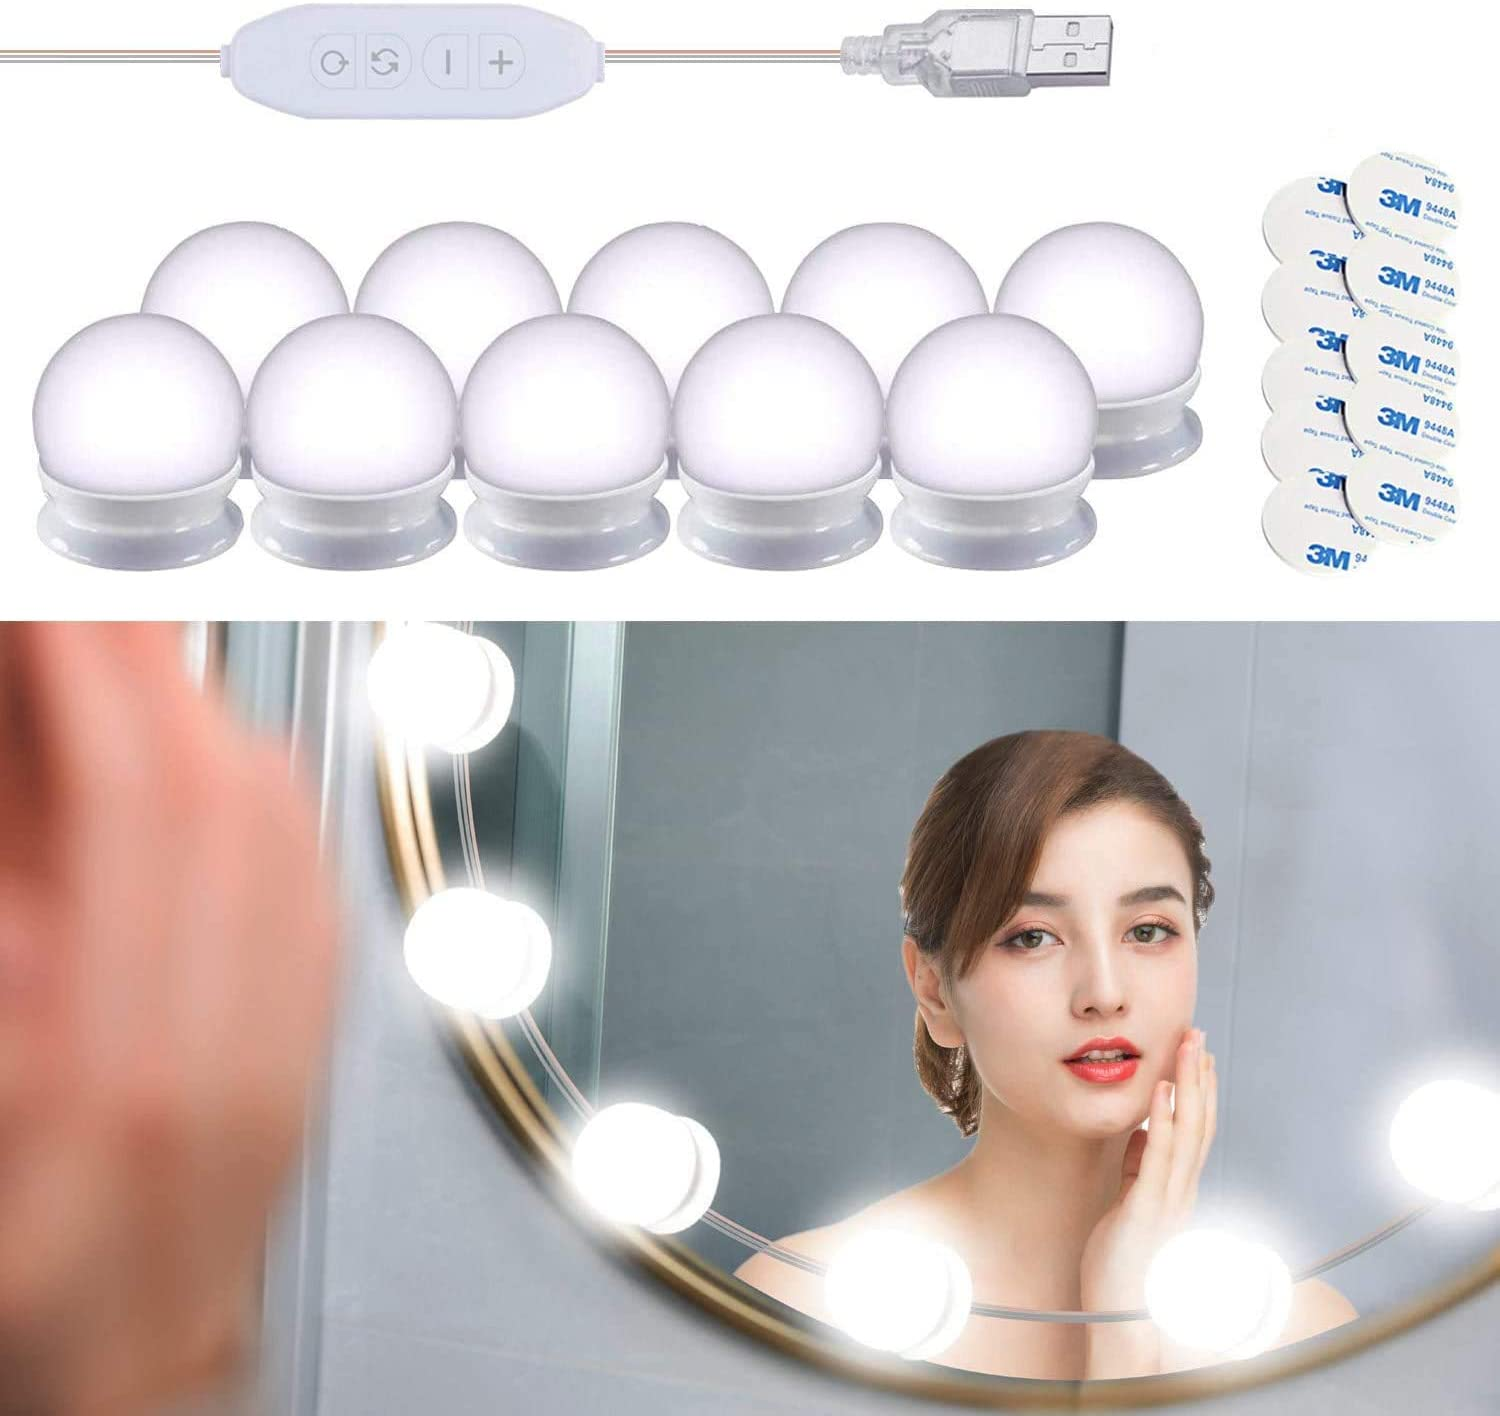 Innoo Tech Mirror Lights, Hollywood Style LED Vanity Mirror Lights Kit with 10 Dimmable Bulbs, USB Cable Vanity Lights for Mirror with 3 Color Modes & 10 Adjustable Brightness